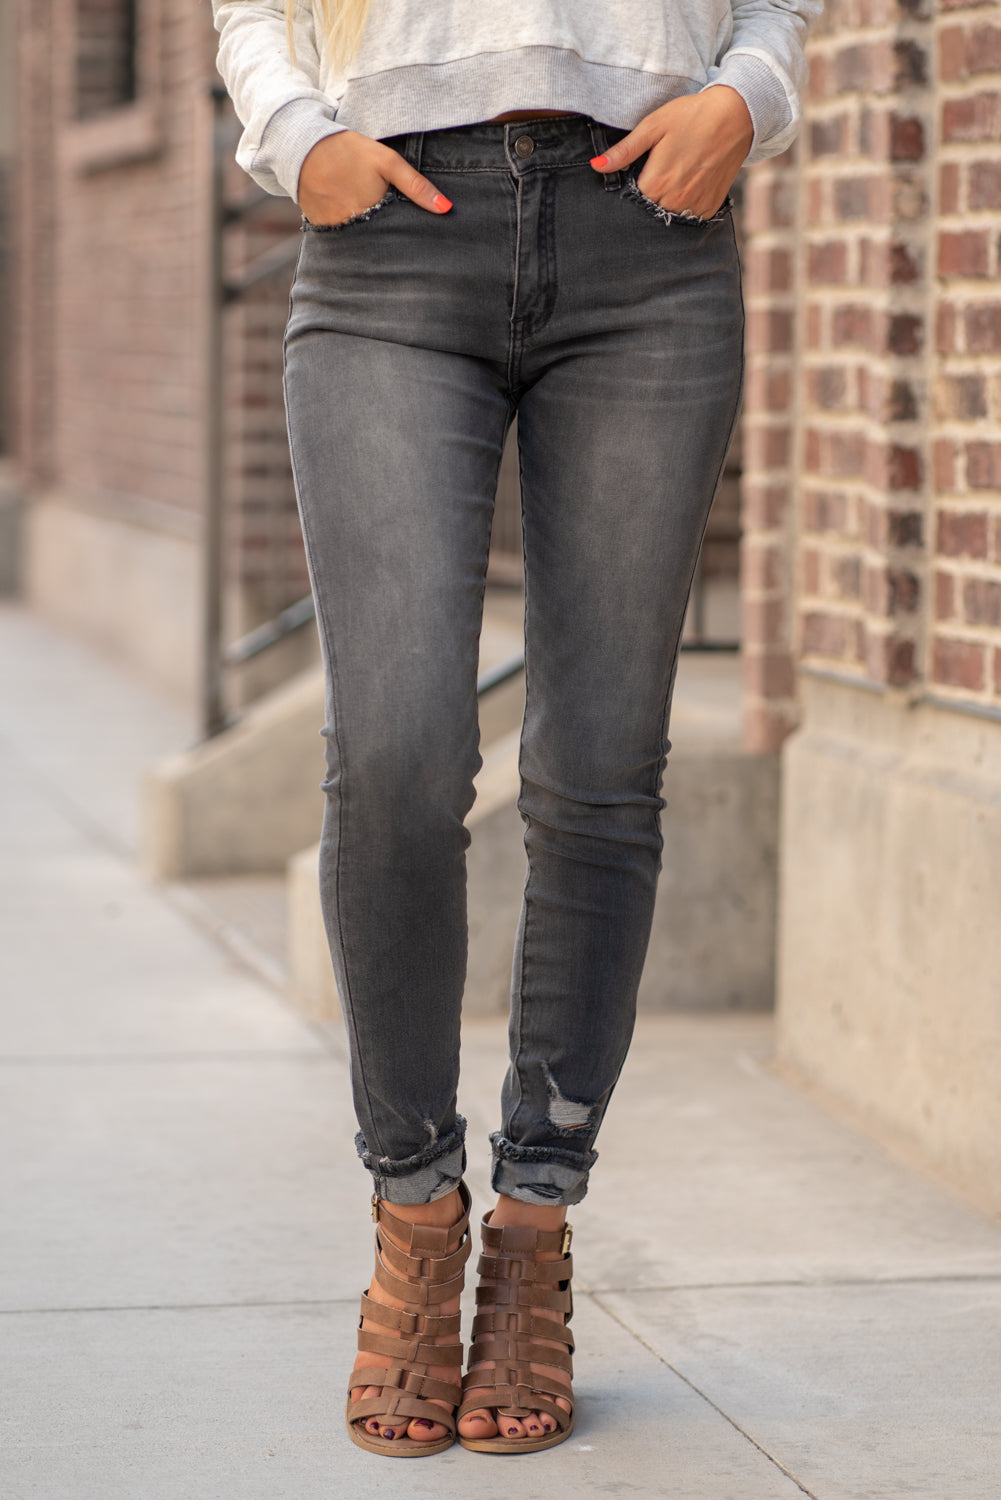 "KanCan Jeans Collection: Fall 2020 Color: Dark Grey Skinny, 29"" Inseam  Mid Rise, 9"" Front Rise Ripped Distressed Ankles COTTON 84.9% POLYESTER 14% SPANDEX 1.1% Fly: Zipper Style #: KC7266GD  Contact us for any additional measurements or sizing.  Haley is 5'6"" and wears size 25 in jeans, a small top and 7.5 in shoes. She is wearing a 25 in these jeans."